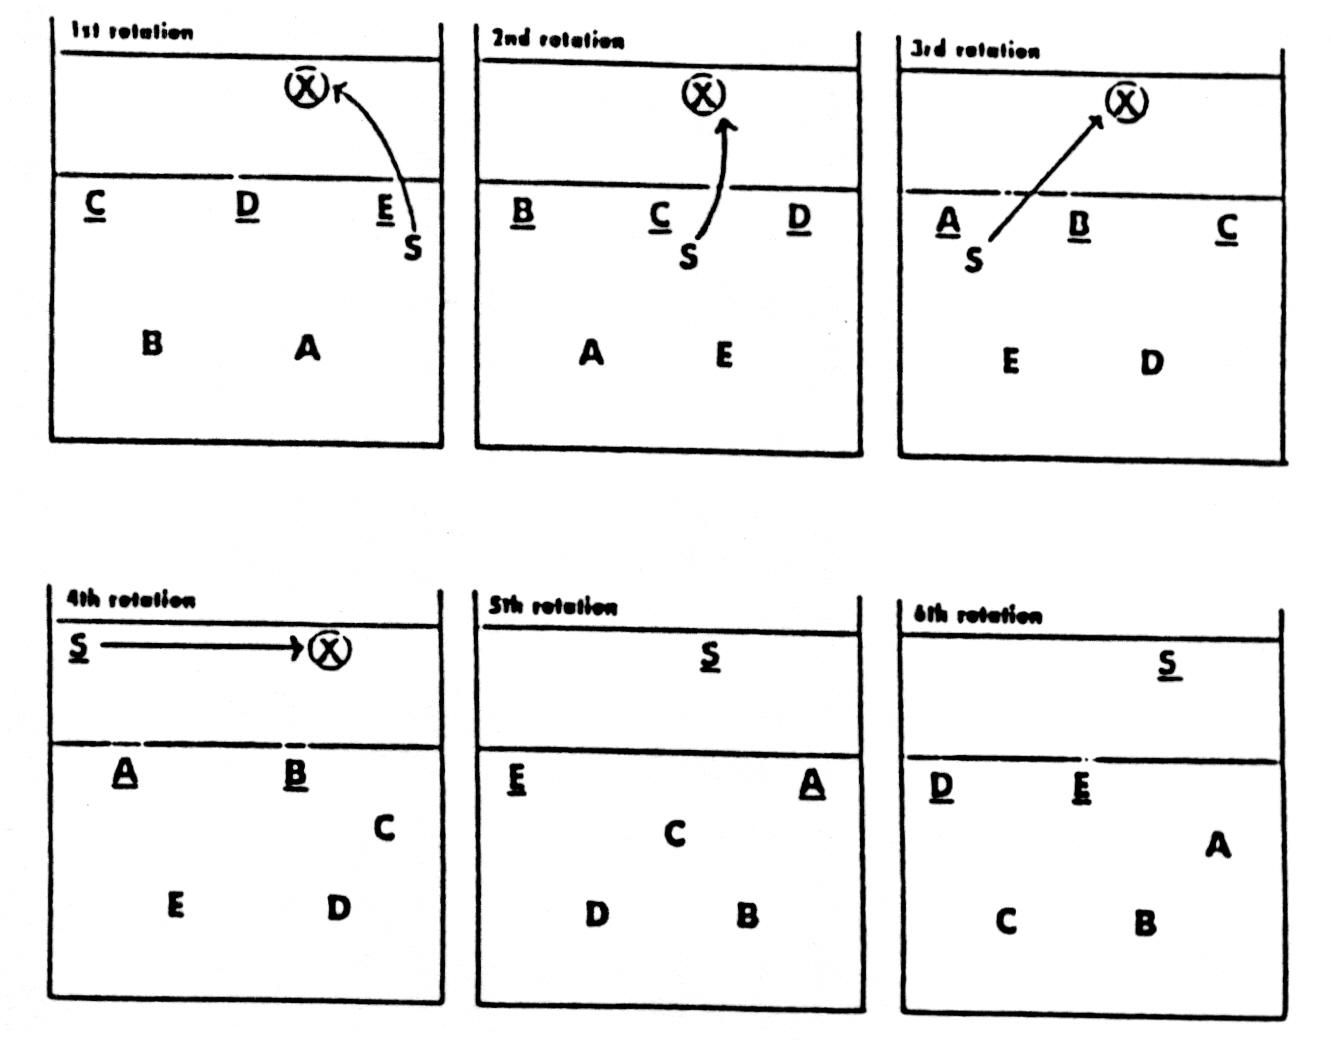 5 3 defense diagram fiero 3800 wiring blank volleyball rotation web about